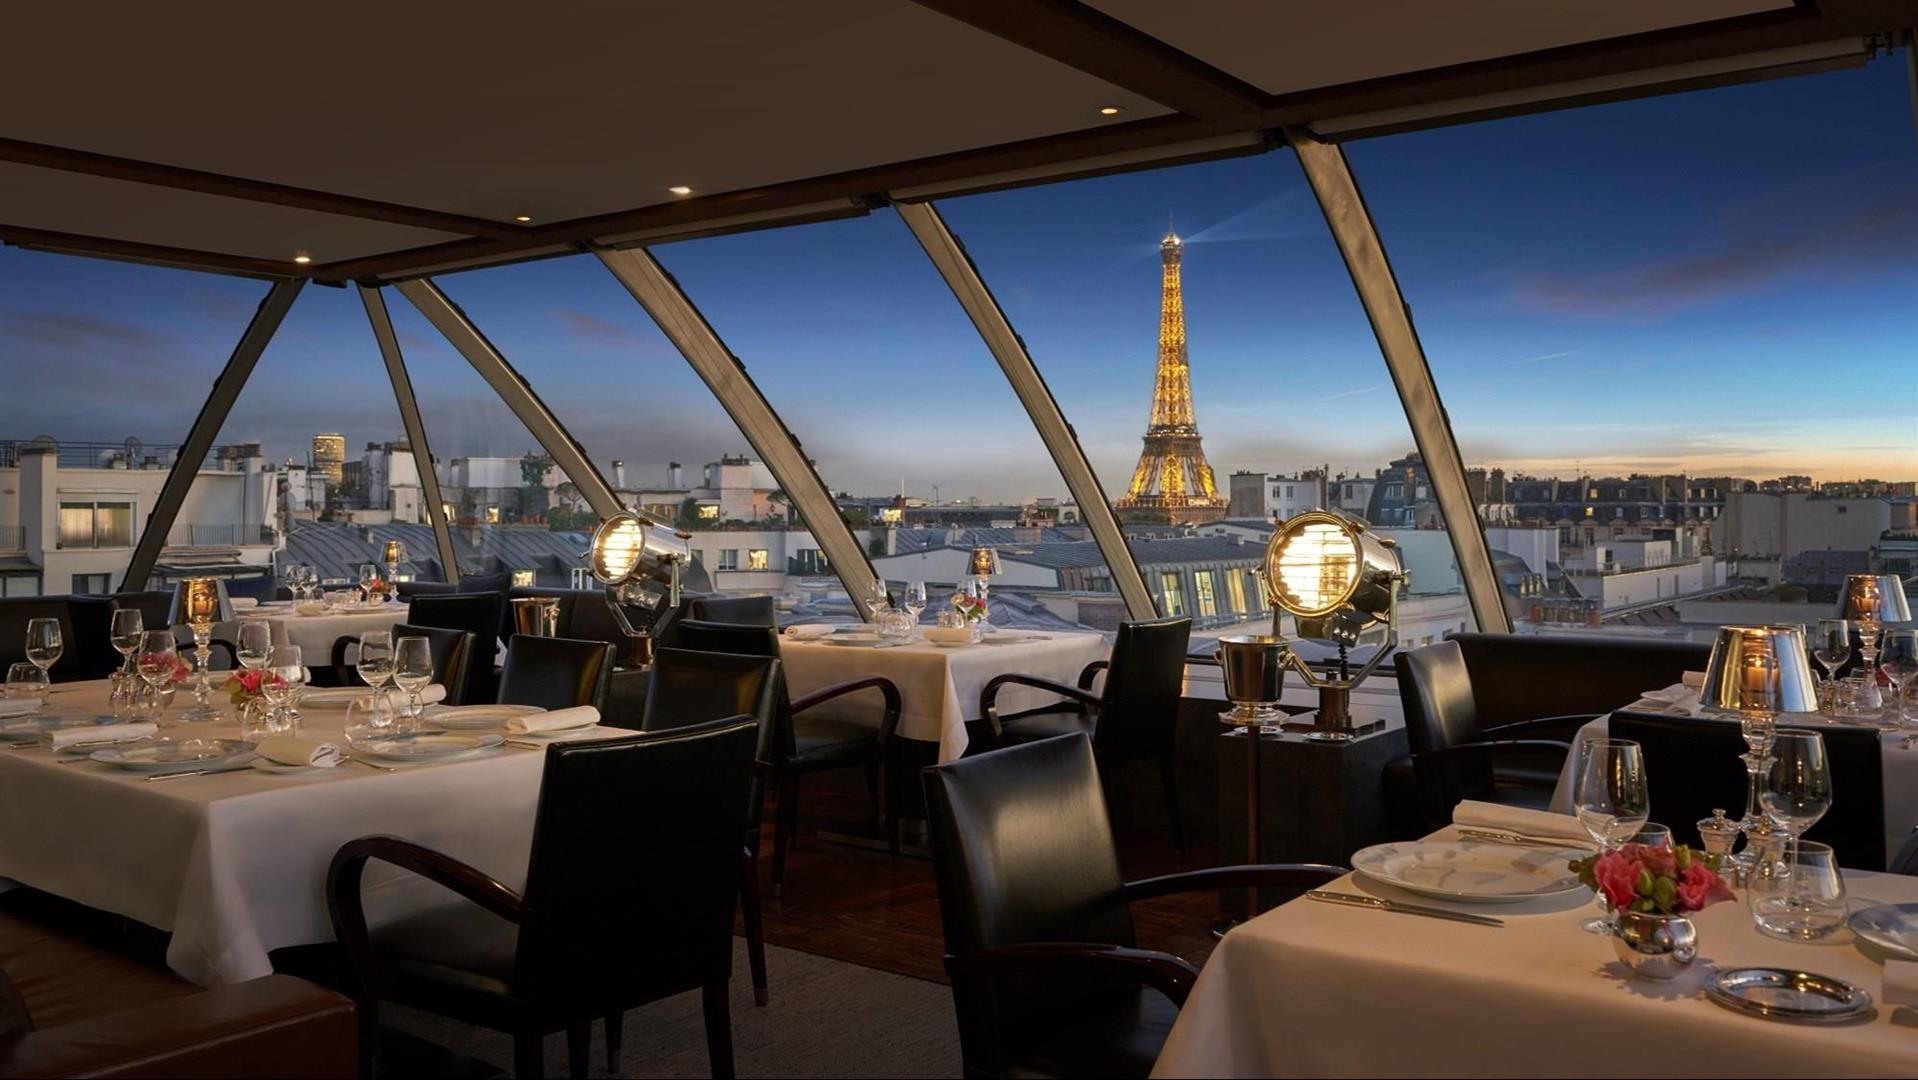 Top 3 Worthy Hotels To Stay In During Paris Design Week 2 paris design week Top 3 Worthy Hotels To Stay In During Paris Design Week Top 3 Worthy Hotels To Stay In During Paris Design Week 2